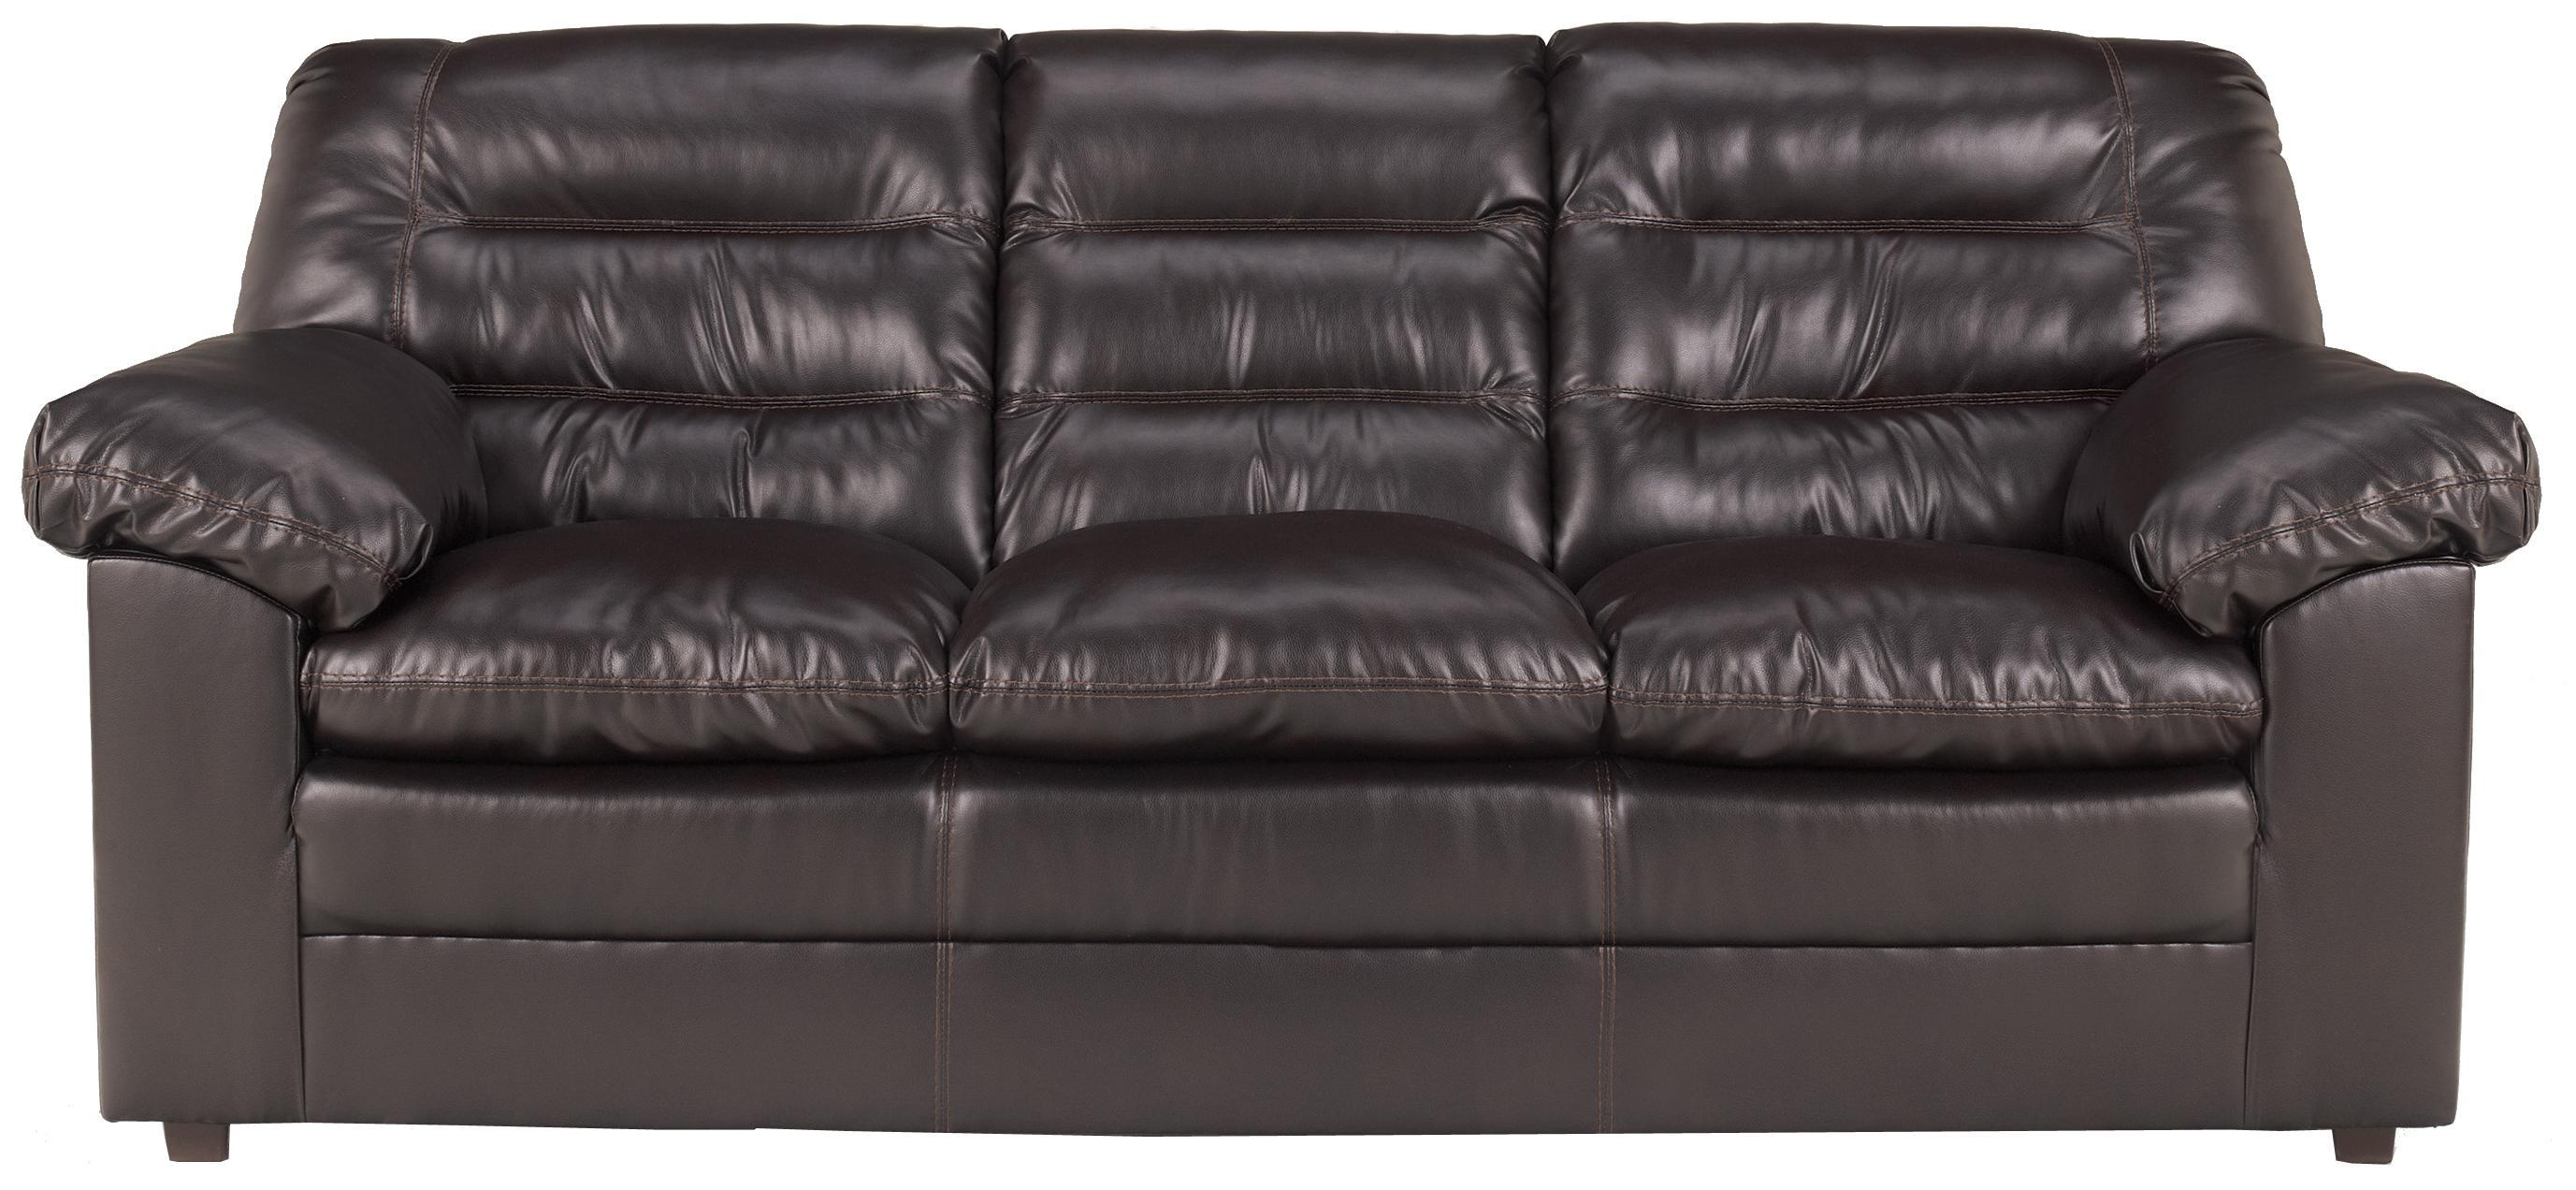 Millennium Knox DuraBlend - Coffee Sofa - Item Number: 1320038